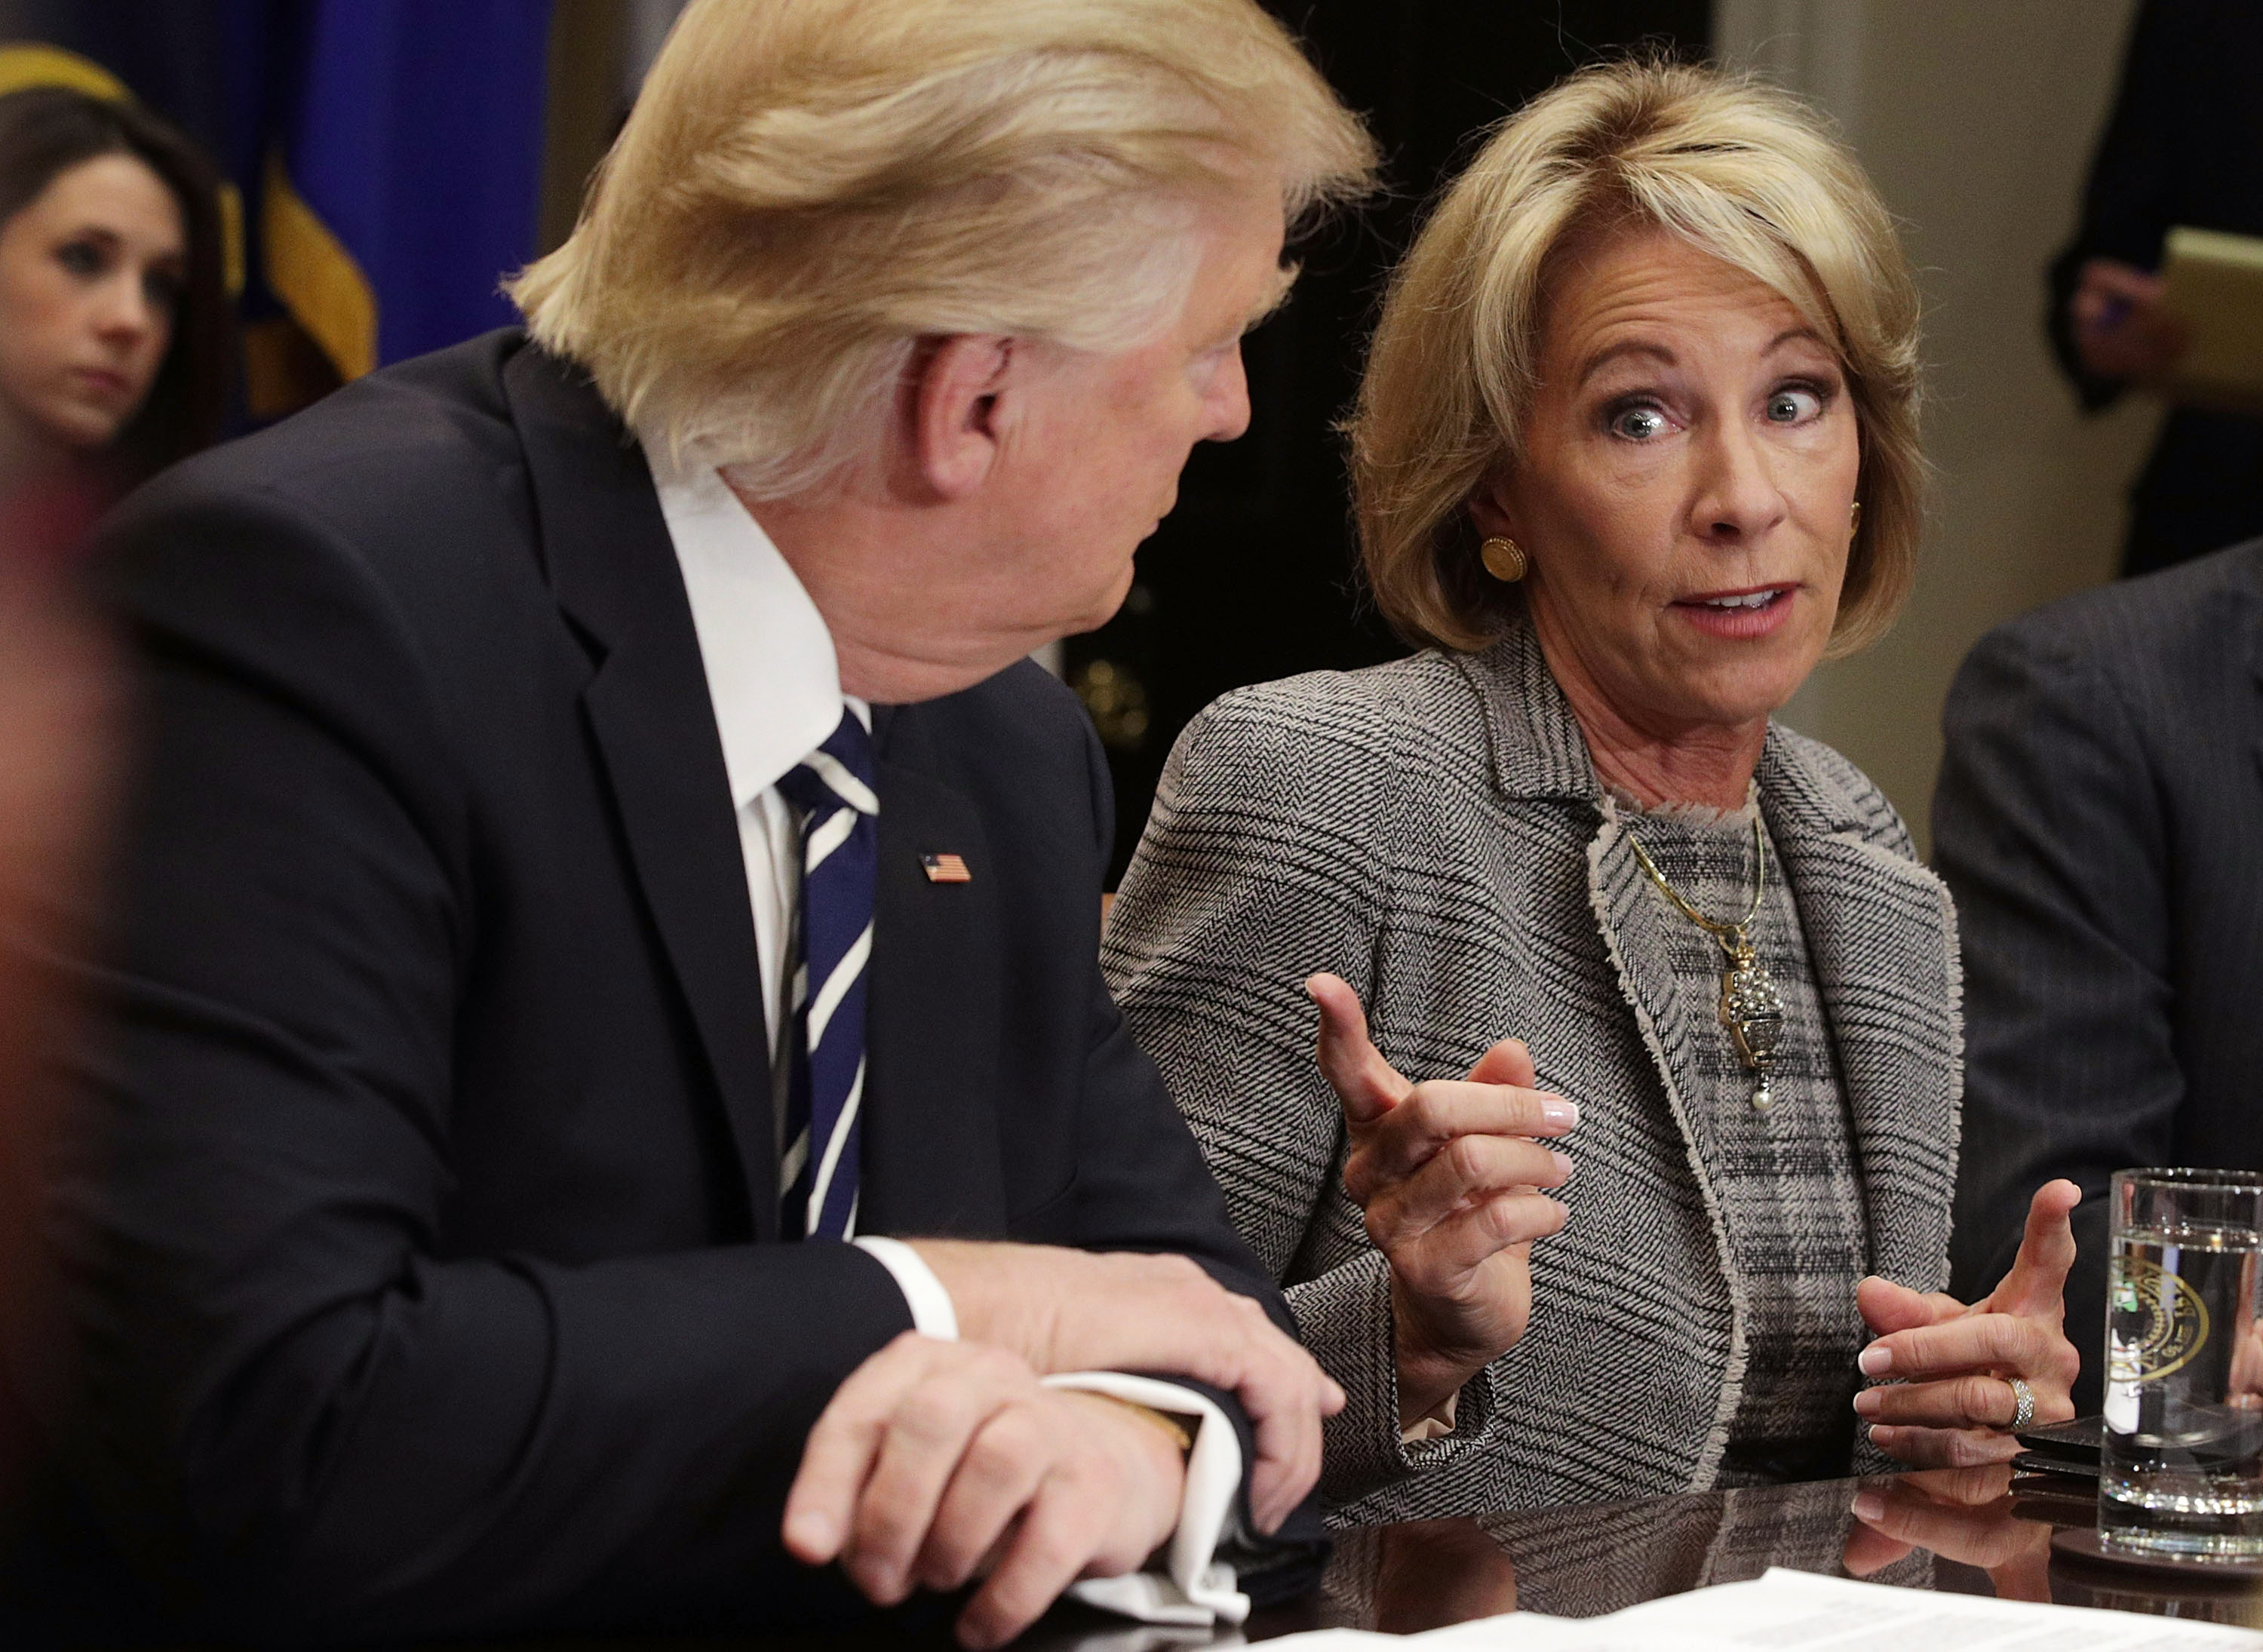 DeVos says her predecessor wasted money on school reform